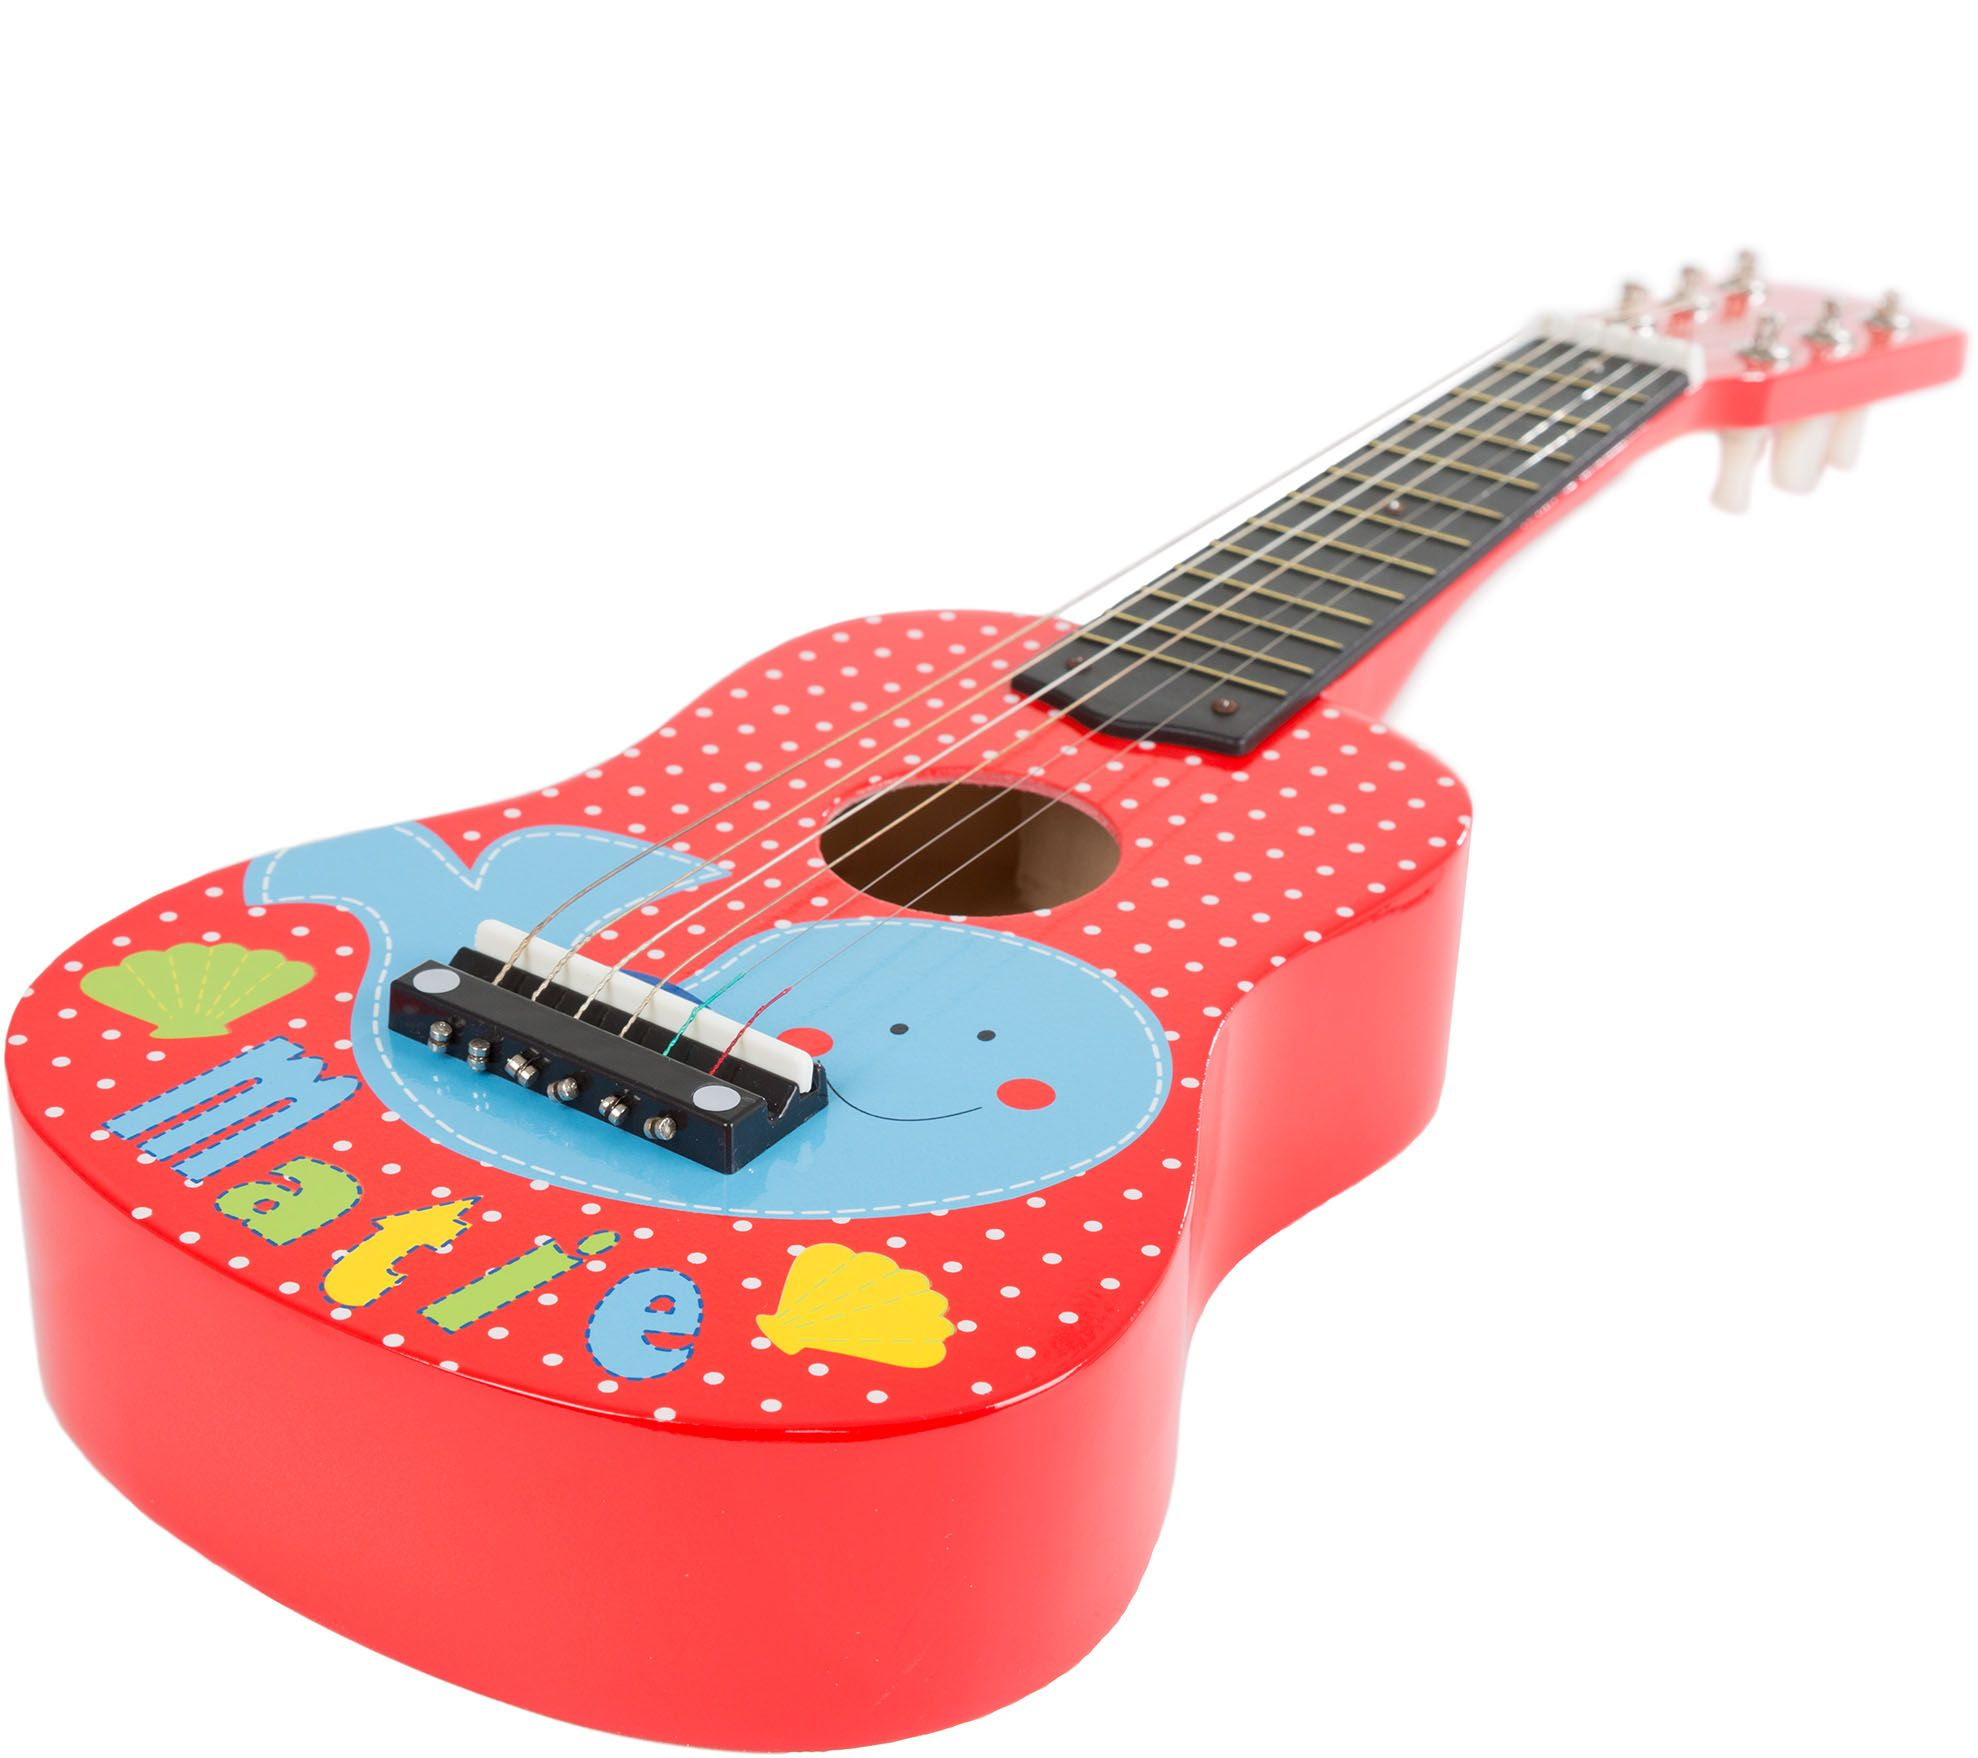 String Lights Qvc : Hey! Play! Toy Acoustic Guitar with 6 Tunable Strings QVC.com